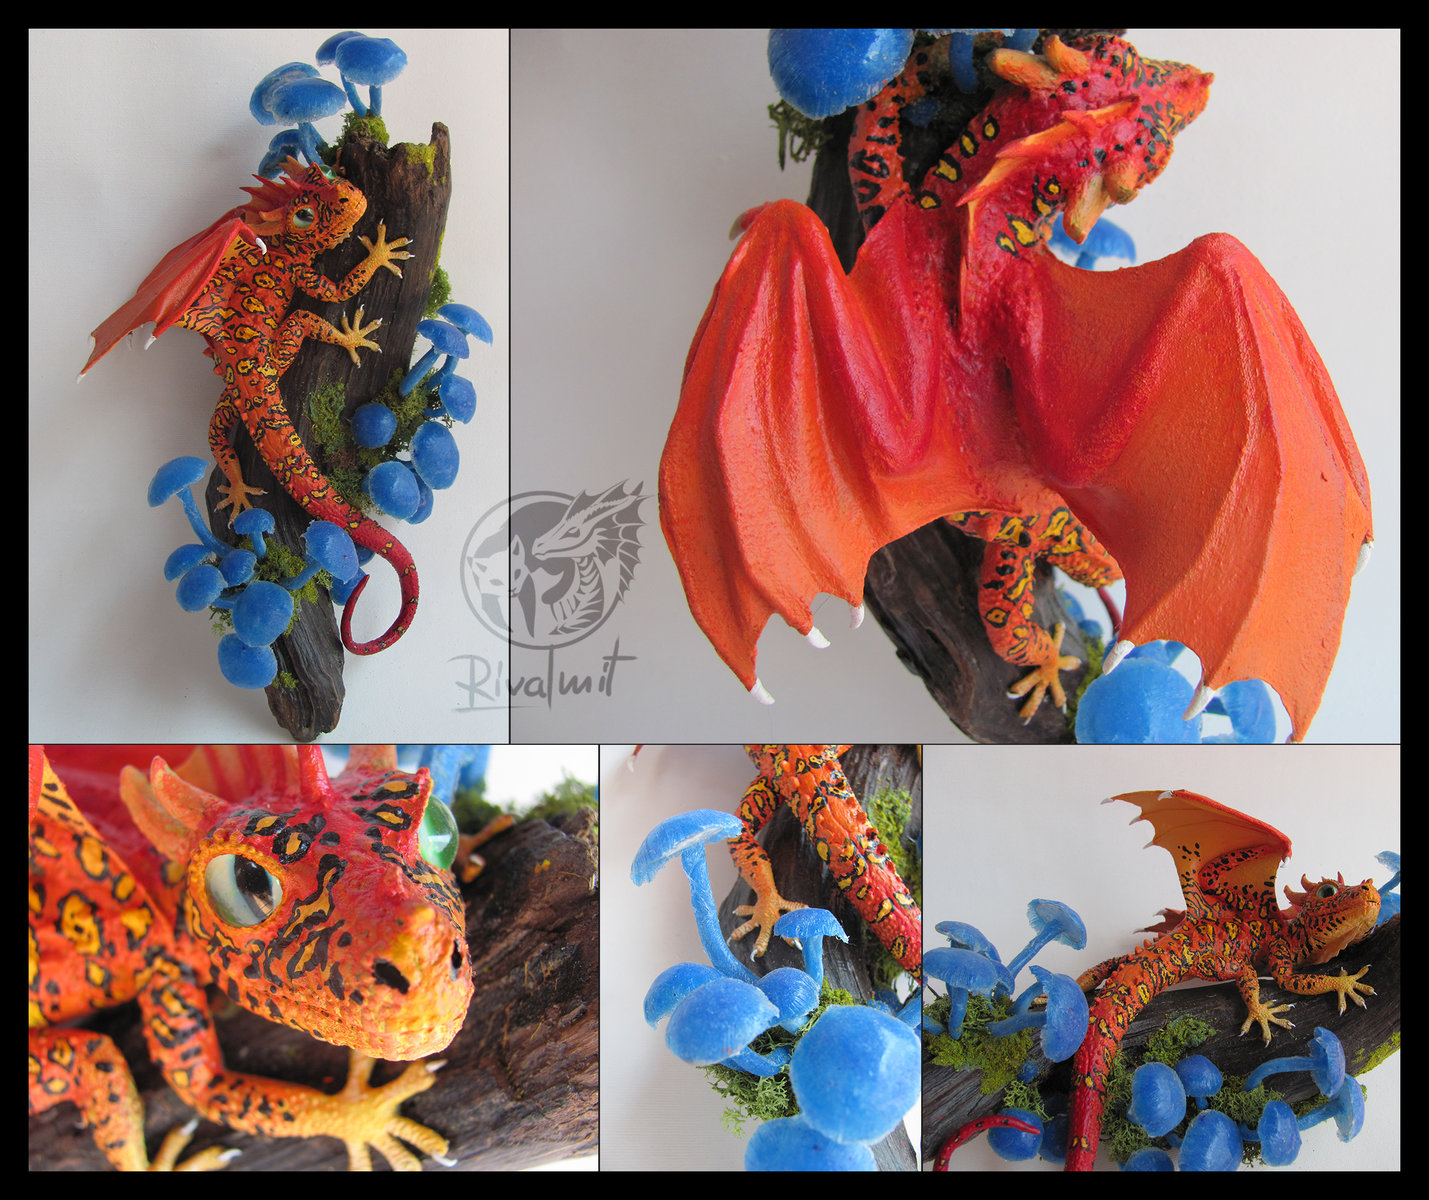 sculpture dragon geco mythology Secret from the depths of the bioluminescent Forest